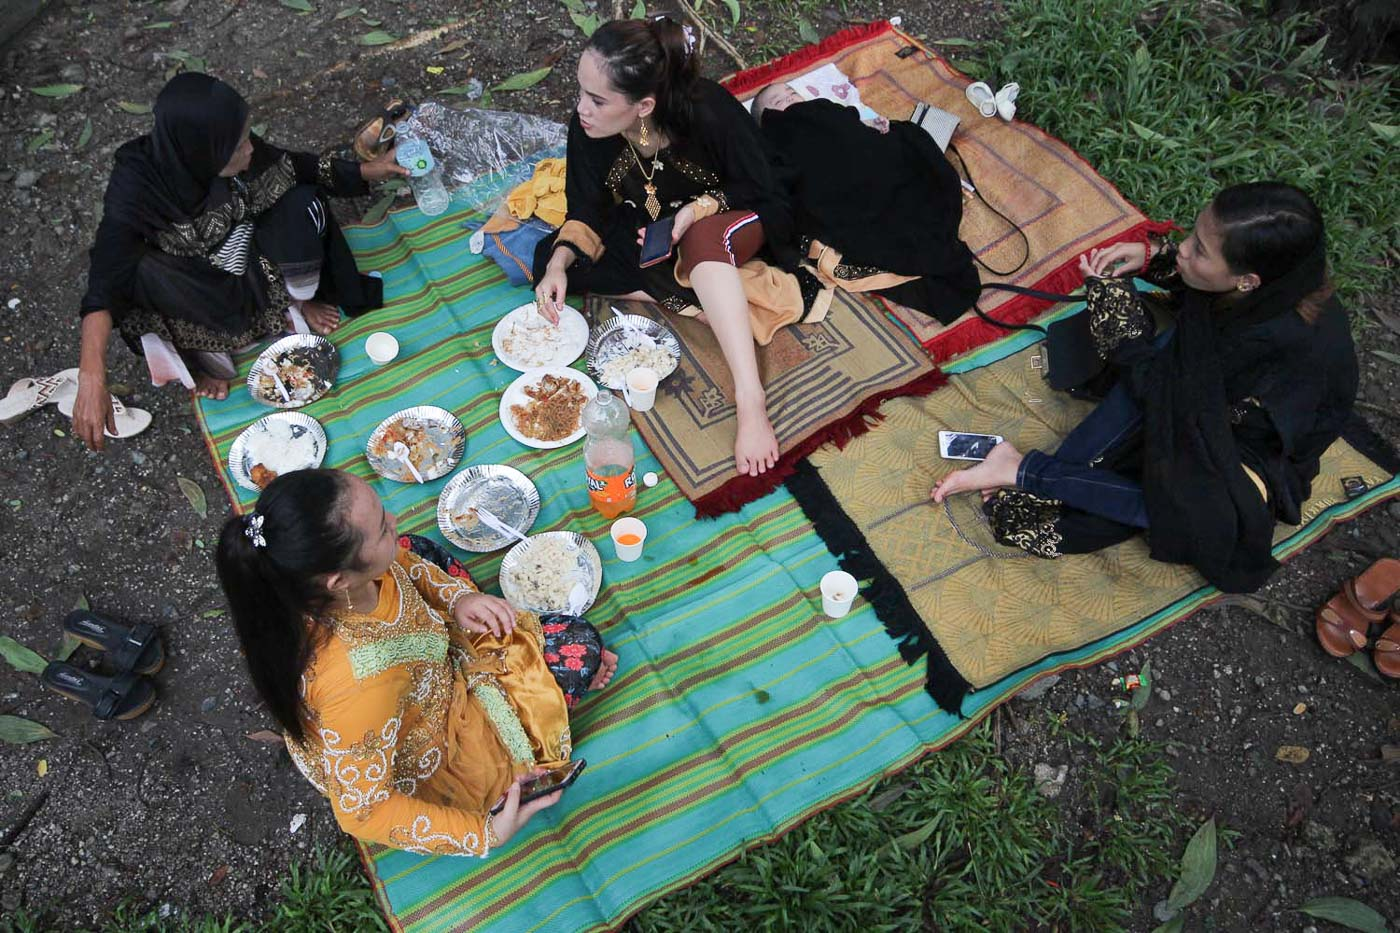 FEAST. A family shares their first meal after the prayers in celebration of Eid al-Fitr at the Quezon City Memorial Circle. Photos by Darren Langit/Rappler